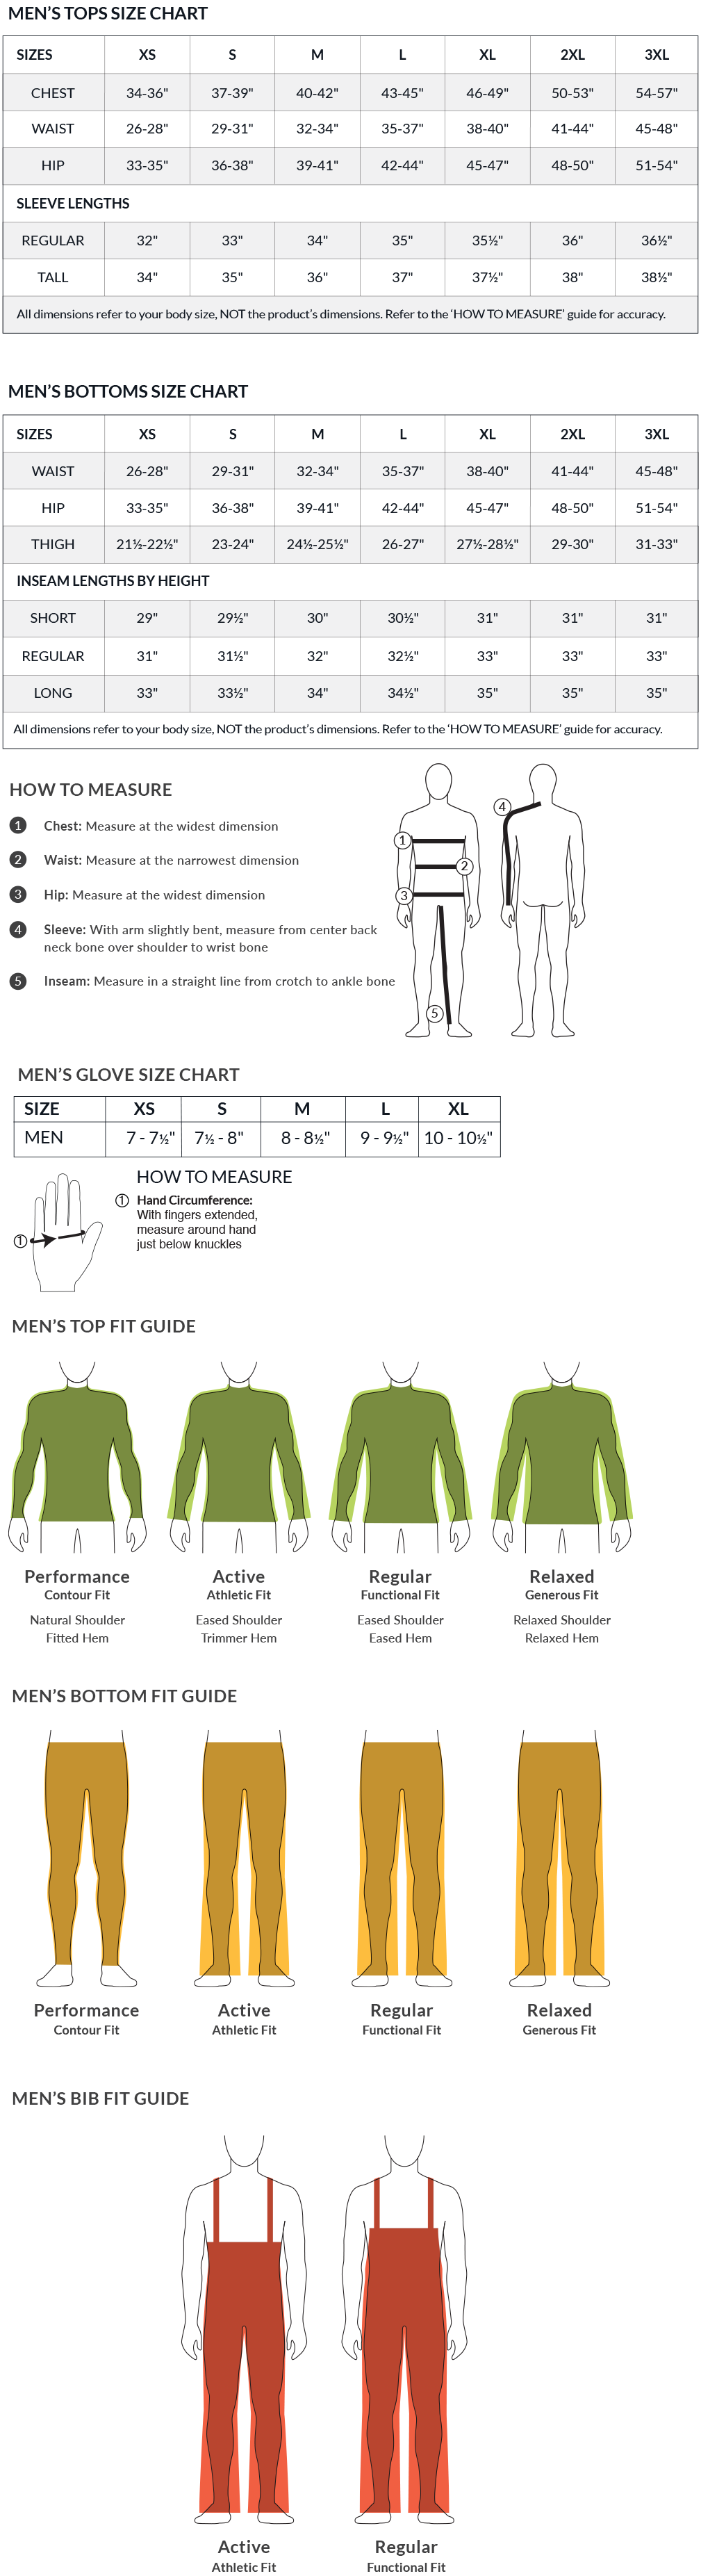 Obermeyer Men's Size Chart and Fit Guide